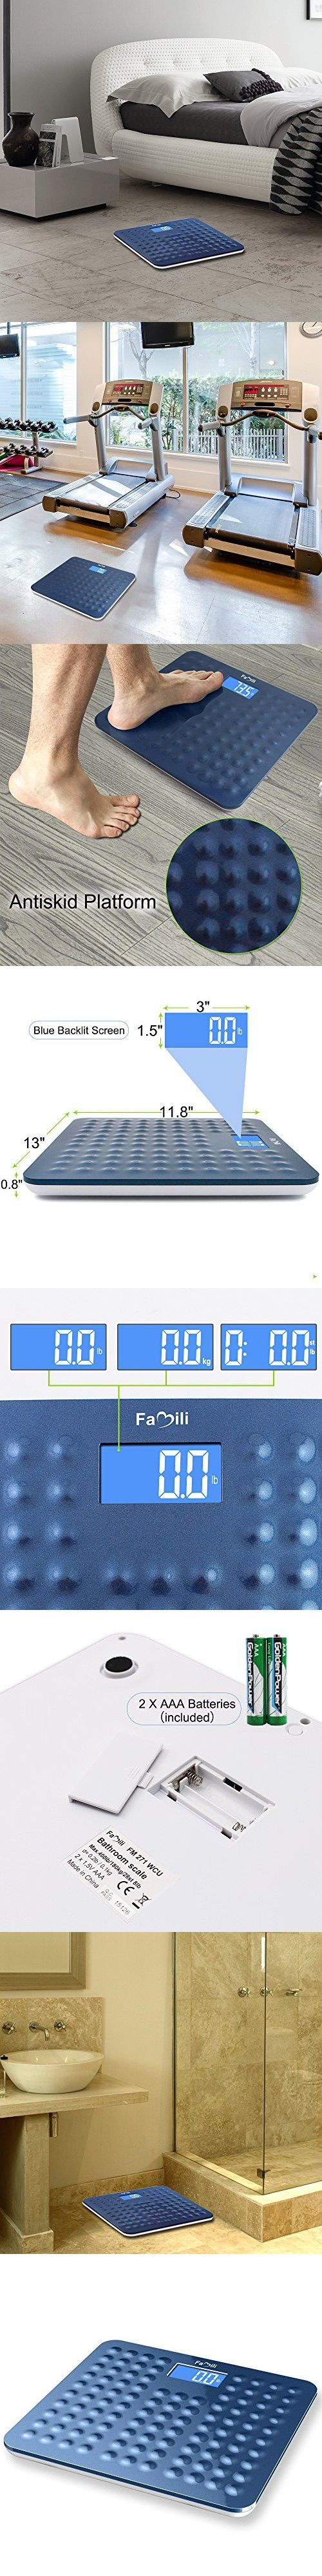 Batteries for bathroom scales - Famili Non Slip Accurate Digital Body Weight Bathroom Scale 400lb 180kg Blue